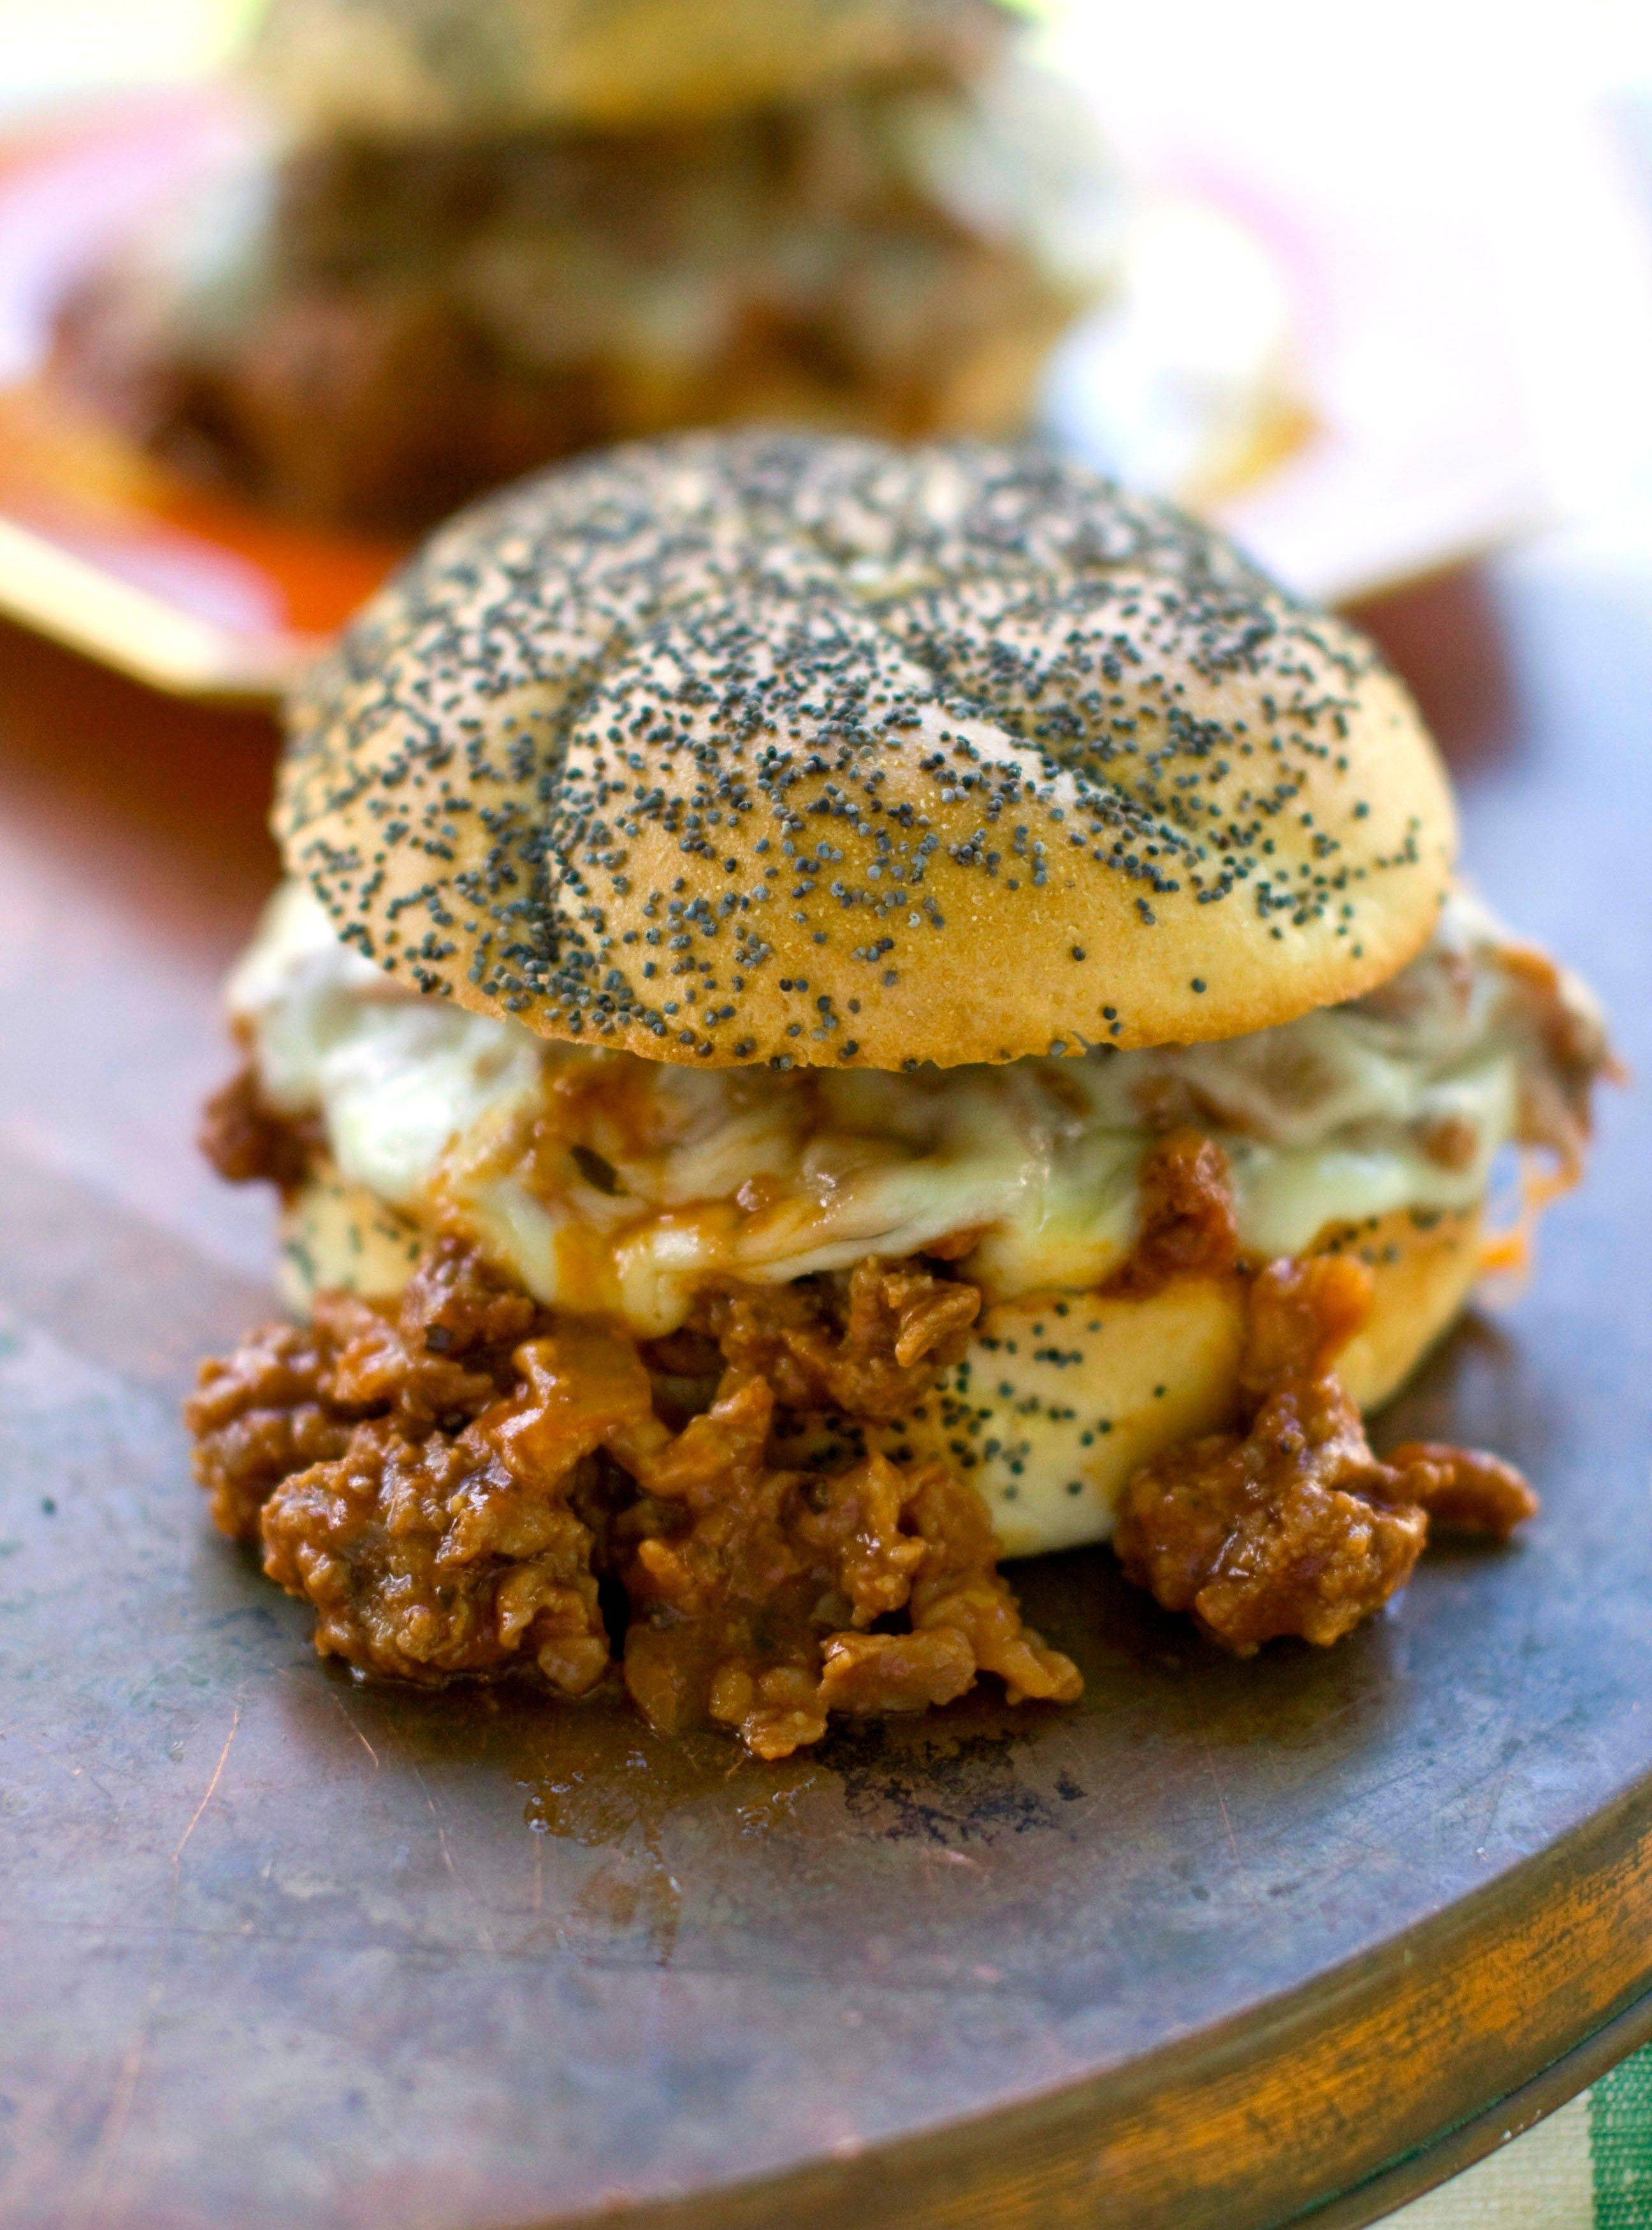 Sloppy Joe sandwiches are likely to be enjoyed by everyone in the family, especially Dad.